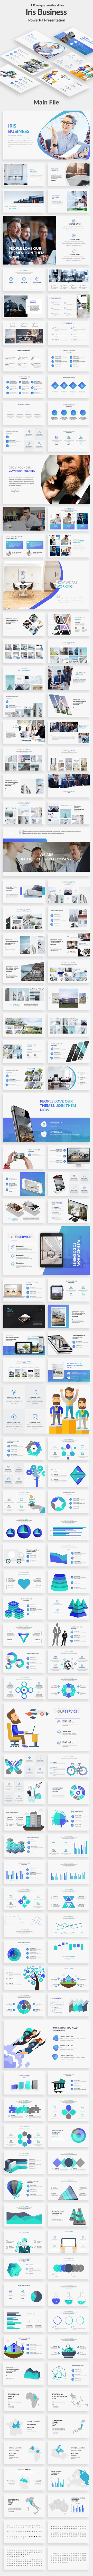 Iris Business Professional Google Slide Template - Google Slides Presentation Templates